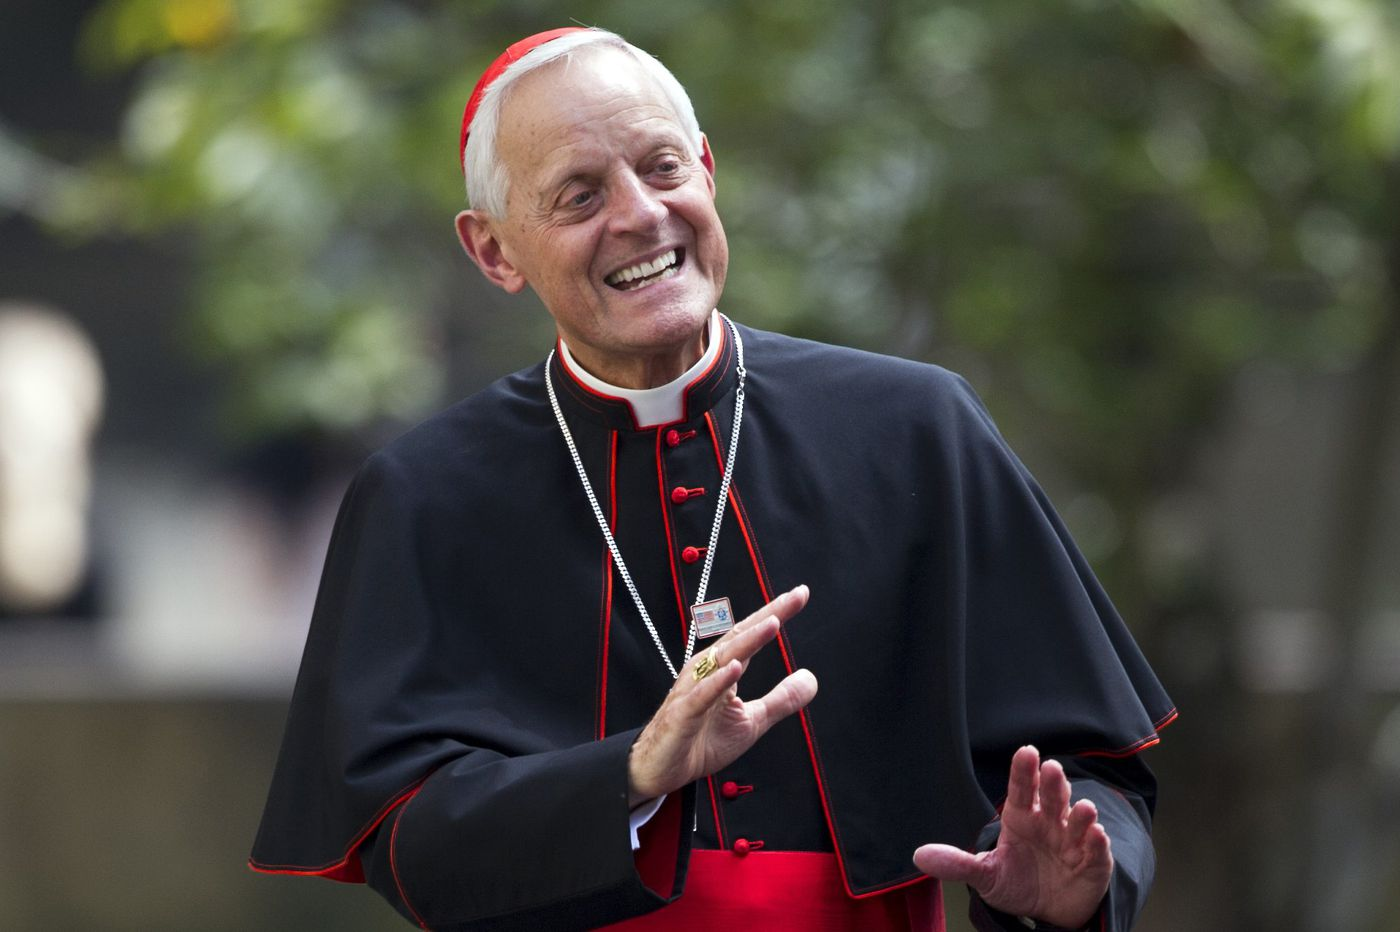 Pope Francis accepts resignation of Cardinal Wuerl, at center of Pa. grand jury report on Catholic clergy sex abuse